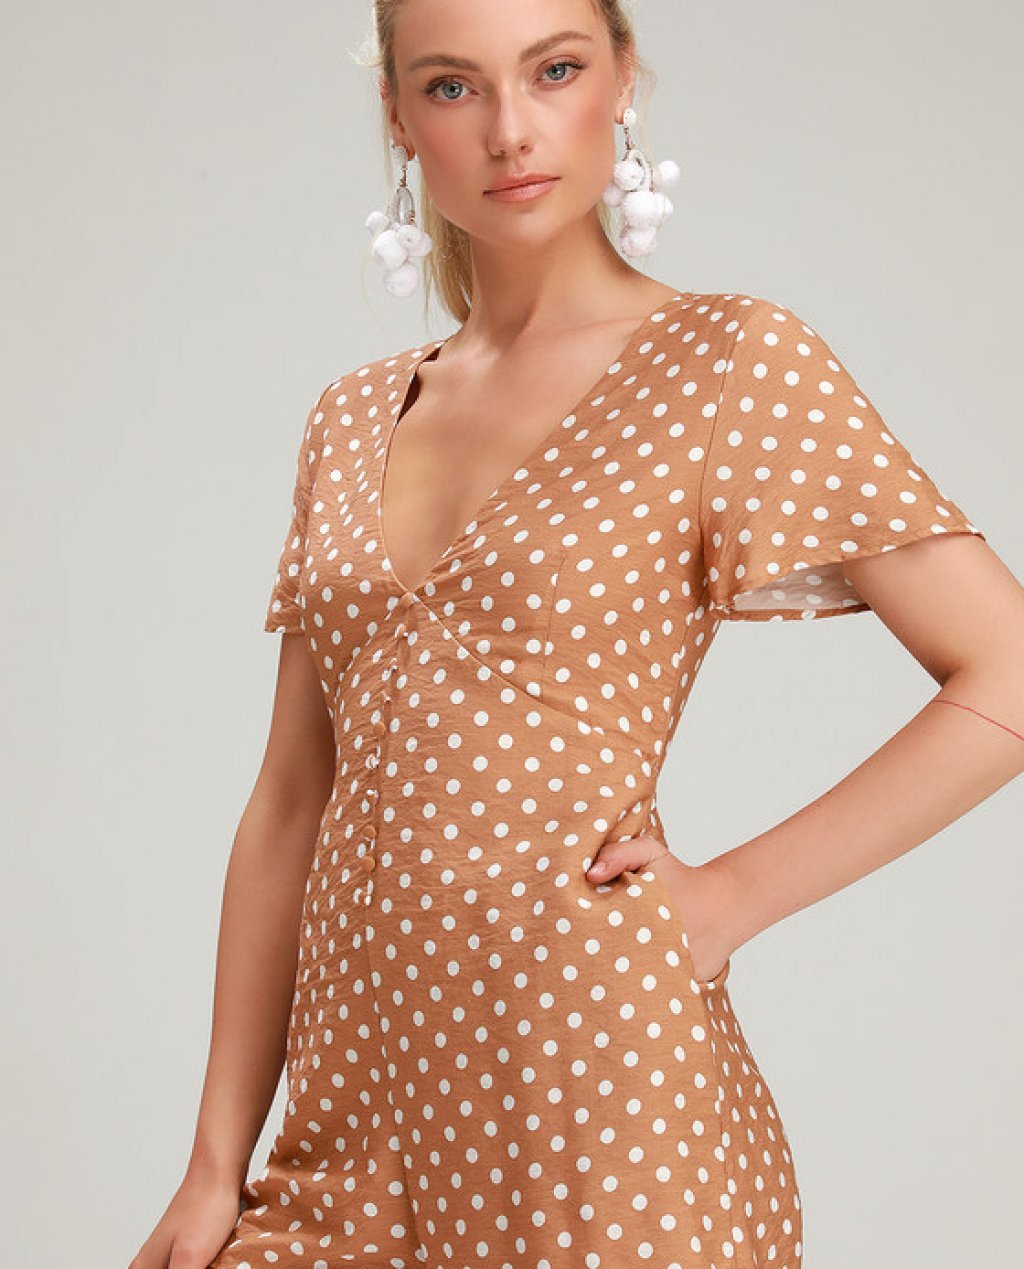 Challies Camel Brown and White Polka Dot Romper